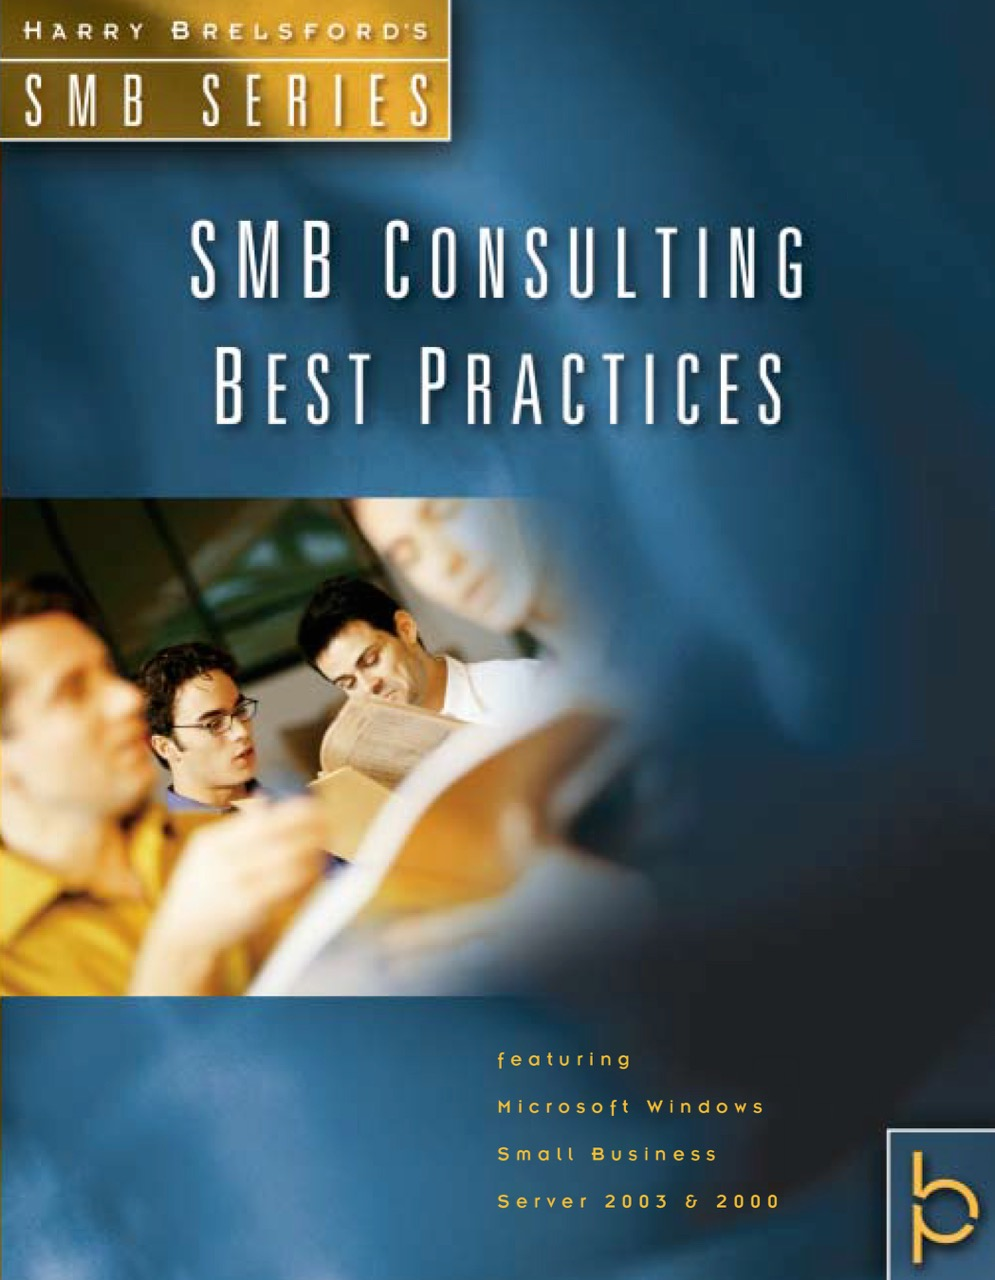 SMB Consulting.jpg